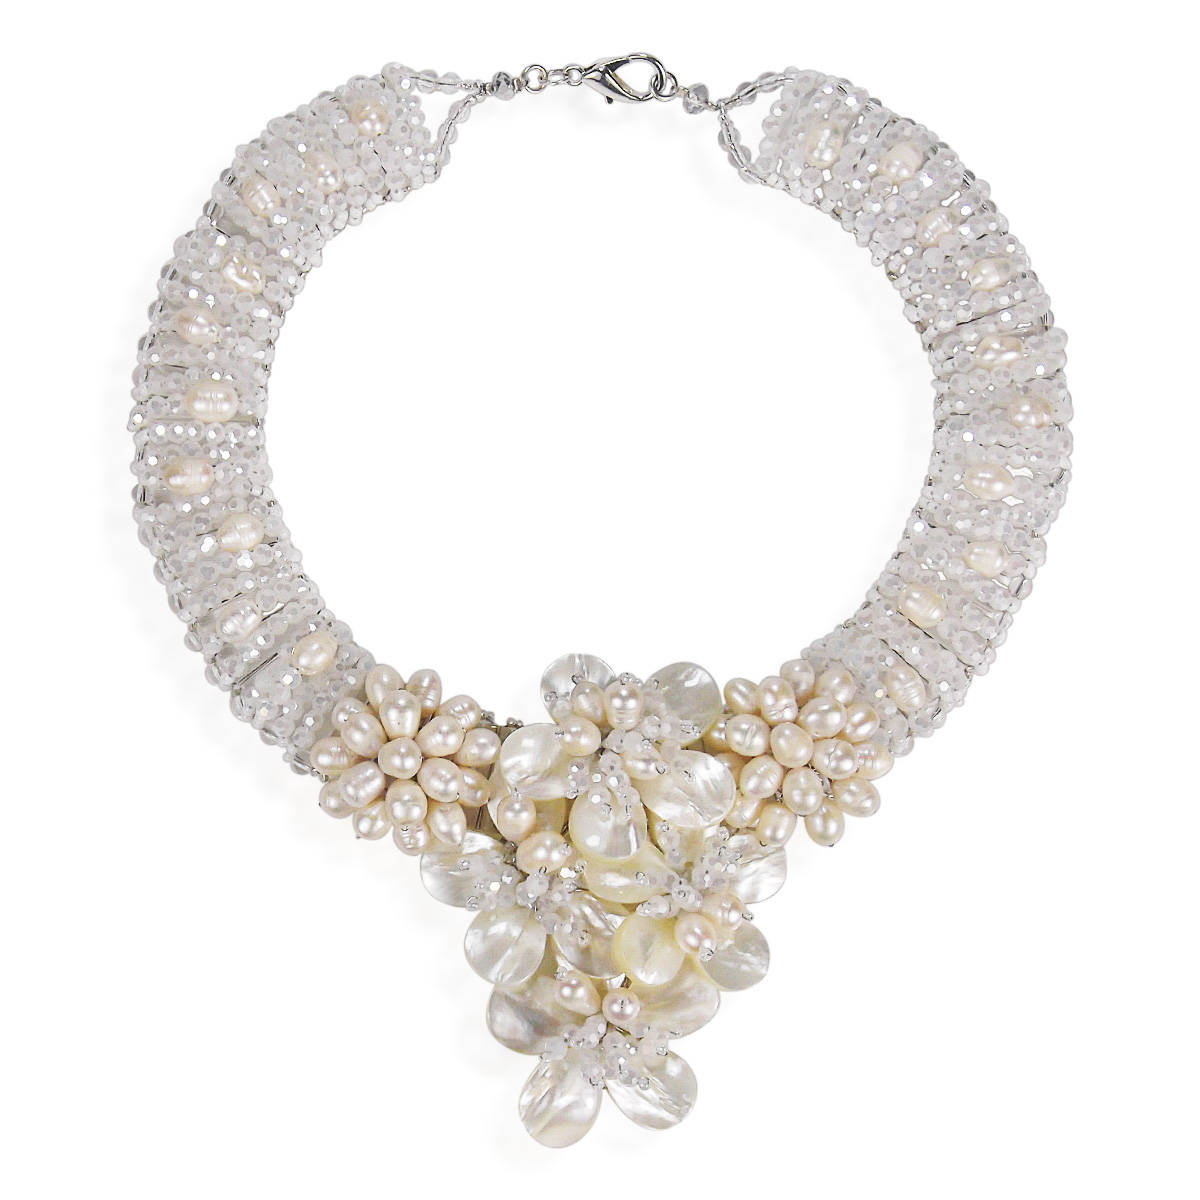 Floral Purity Mother of Pearl and Cultured Freshwater Pearl Bridal Necklace by